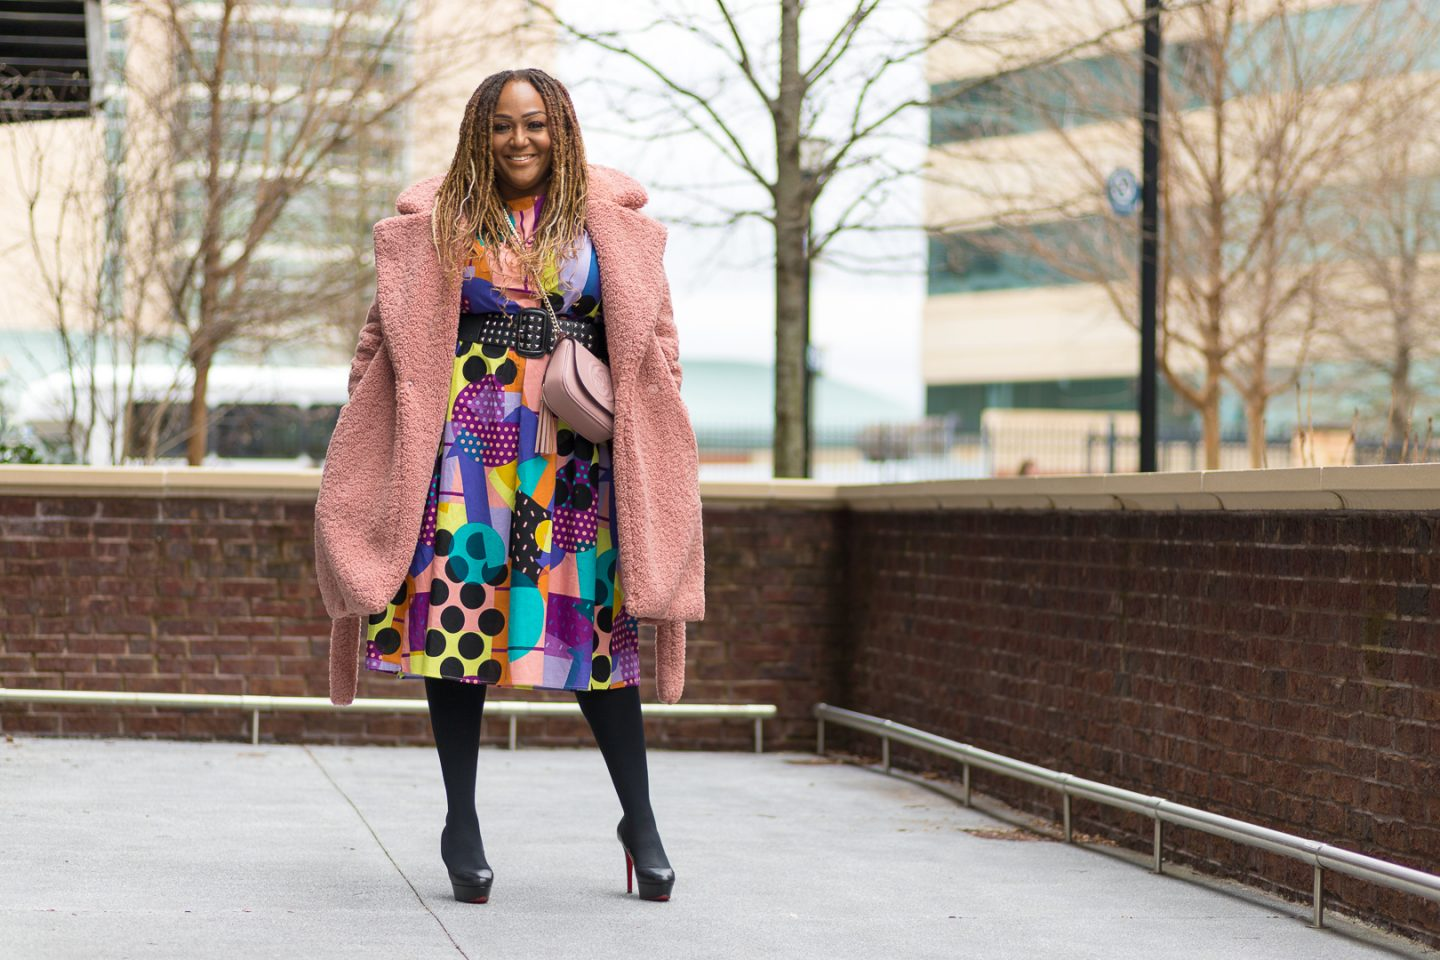 Influencer Nikki Free wearing colorful print dress from SHEIN with Teddy Coat